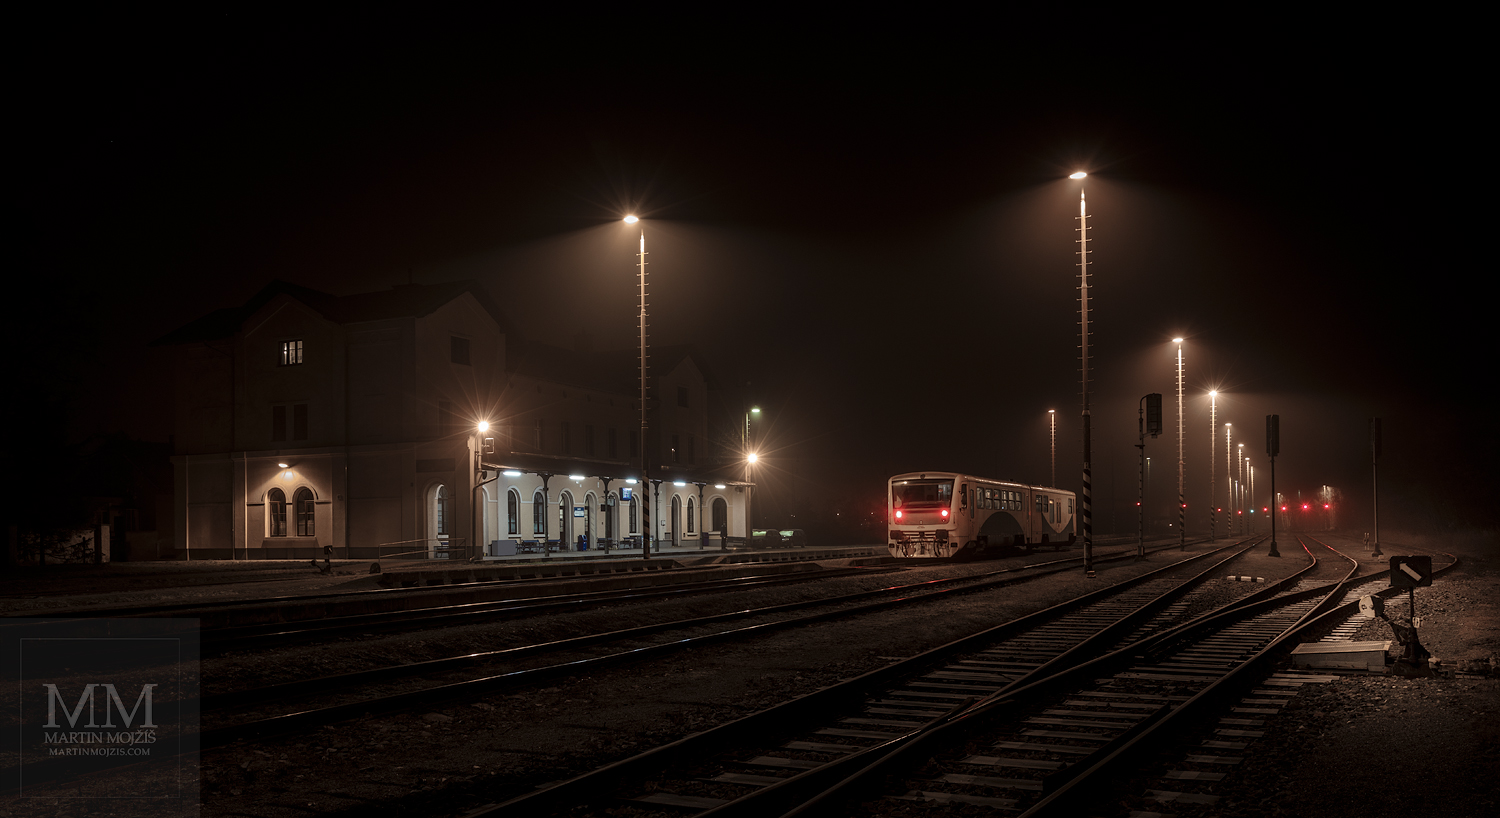 Fine Art large format photograph of the foggy evening railway station. Martin Mojzis.